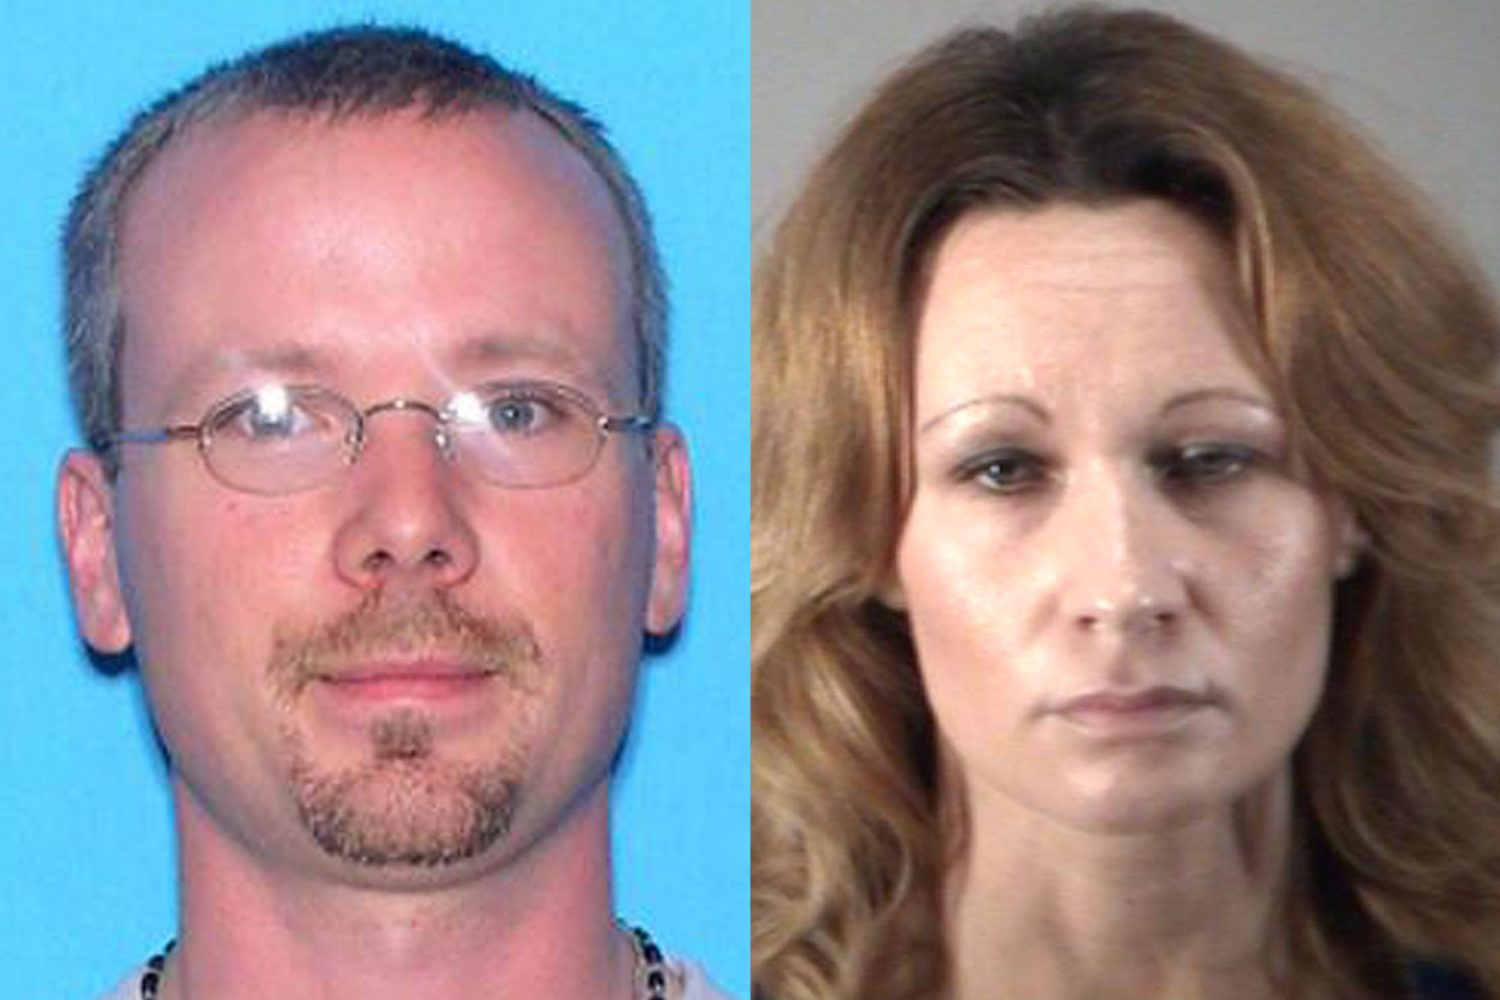 florida woman assumed husband's identity after murdering him to convince family he was still alive